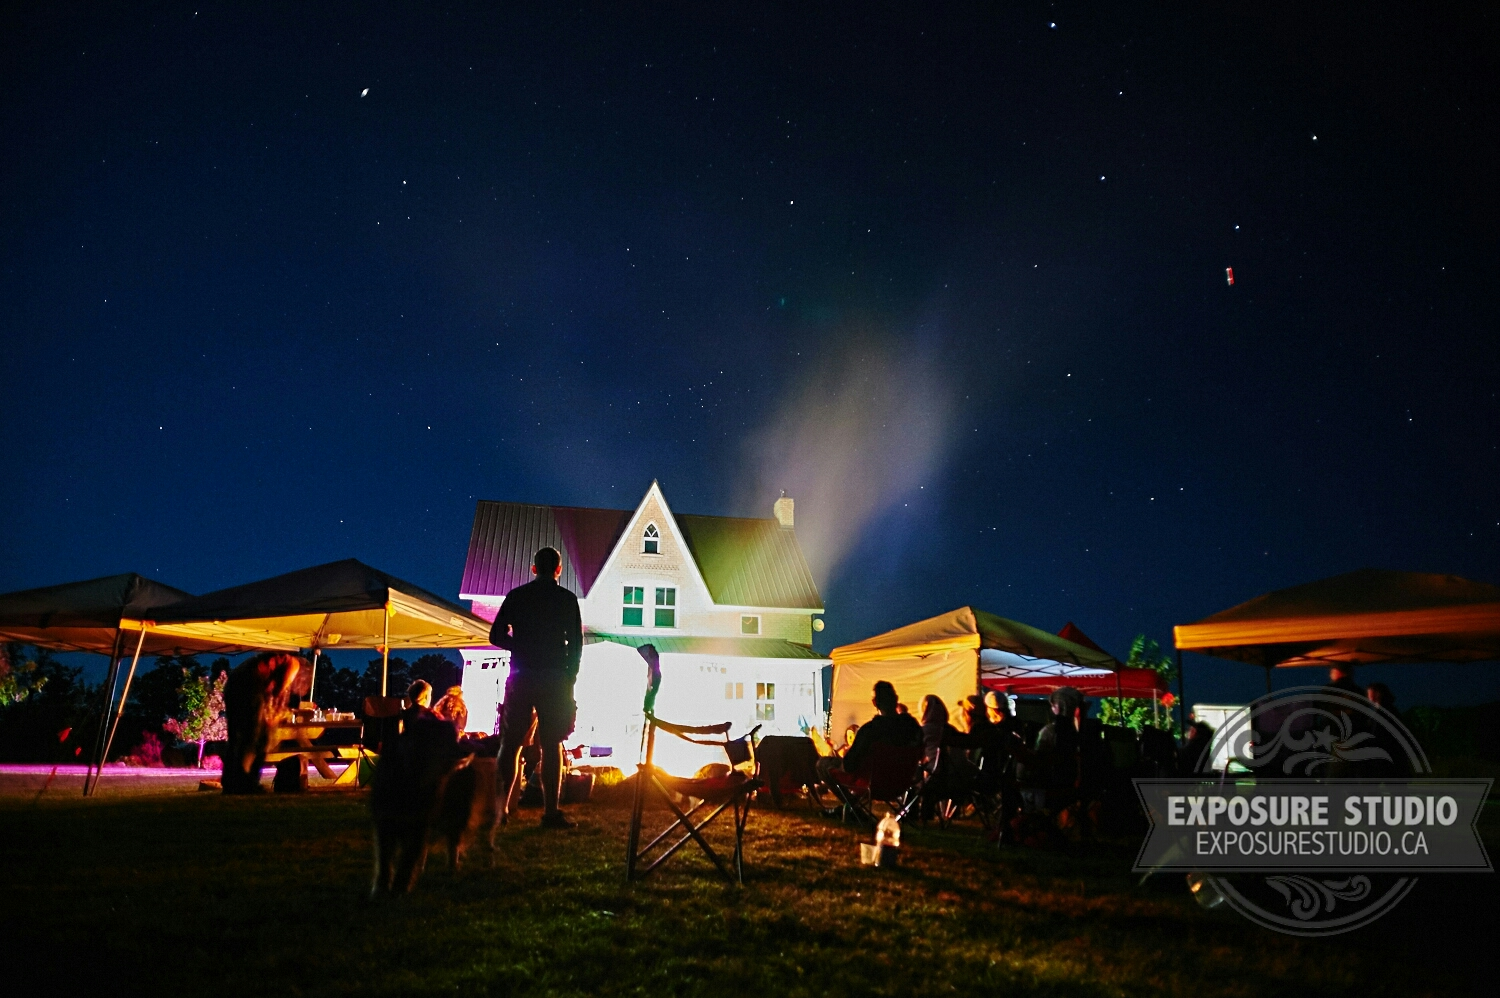 The glow of musical genius and the night sky of Beaver Valley illuminating theminds at  EppingFest 2015